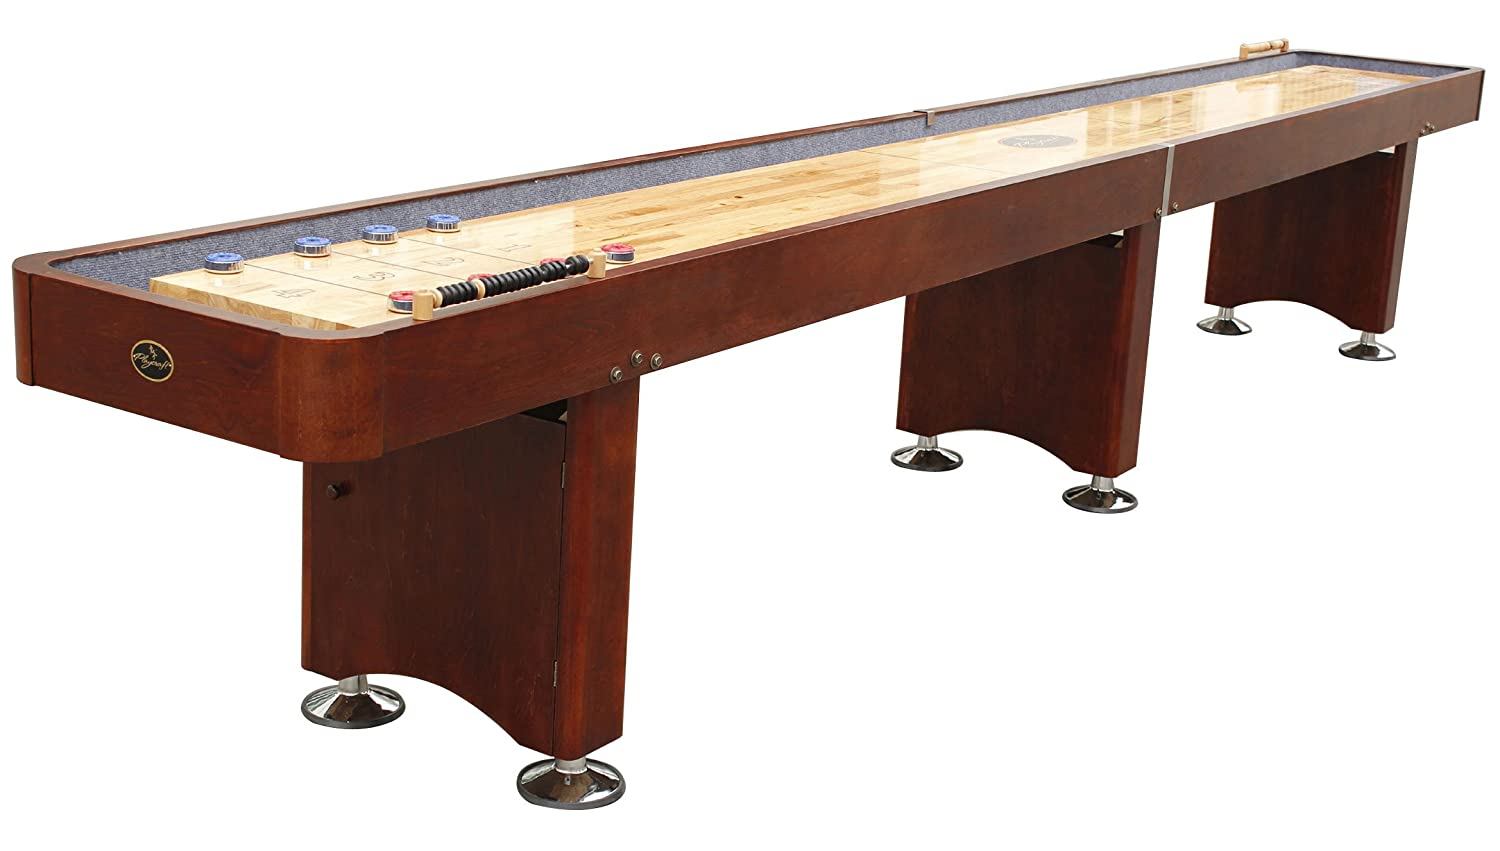 71yW3 IkECL._SL1500_ amazon com playcraft georgetown shuffleboard table sports  at gsmx.co